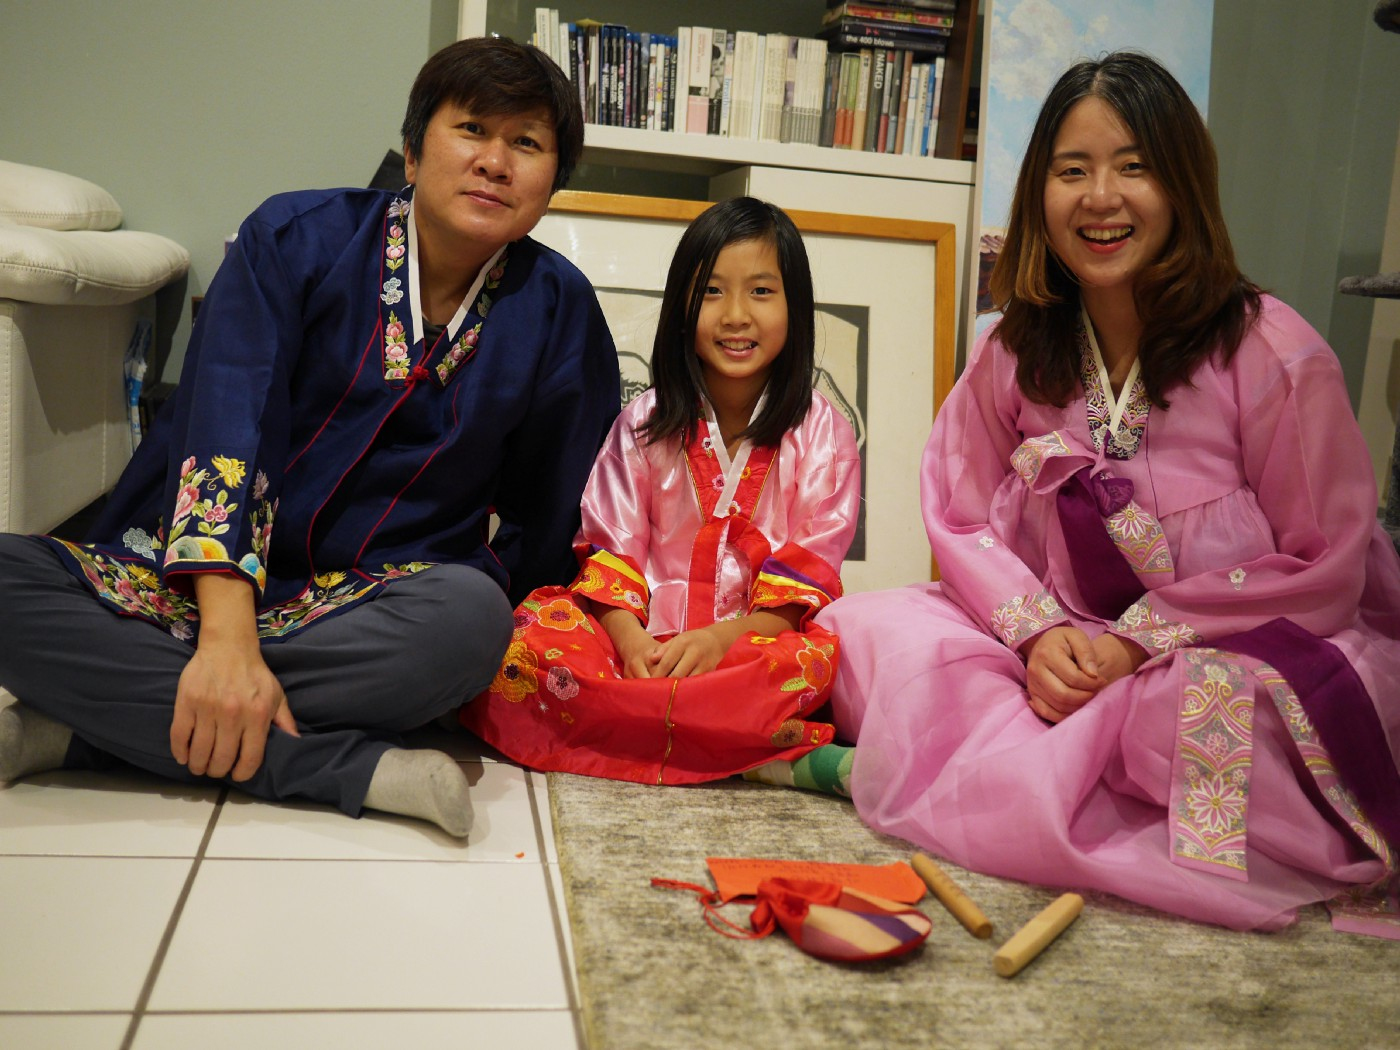 Kyung Hyun Kim sits with his daughter, Sidd Kim, and wife, Yourim Lee, wearing hanbok